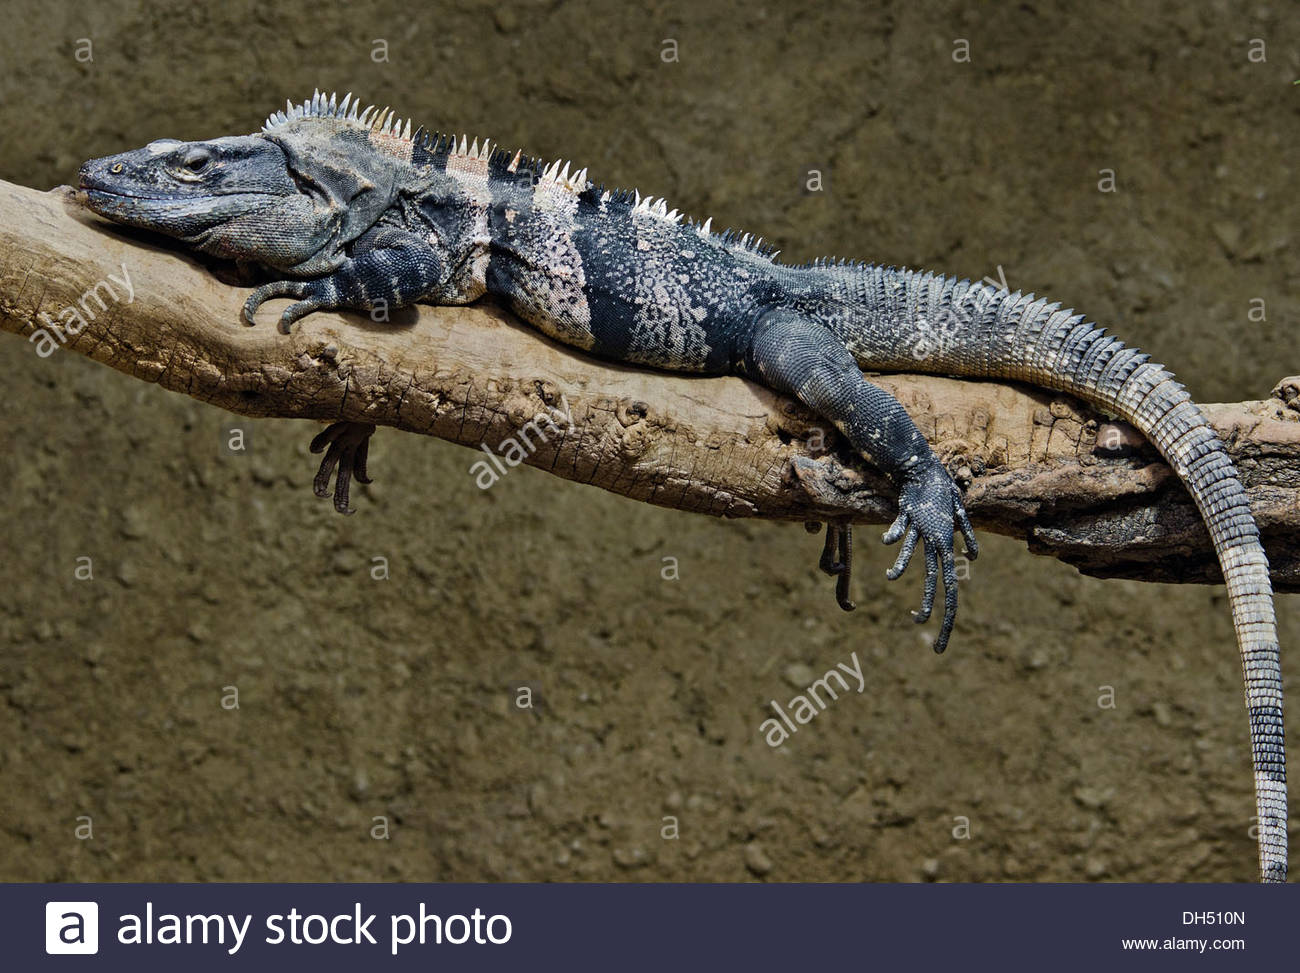 Black Spiny Tailed Iguana svg #15, Download drawings